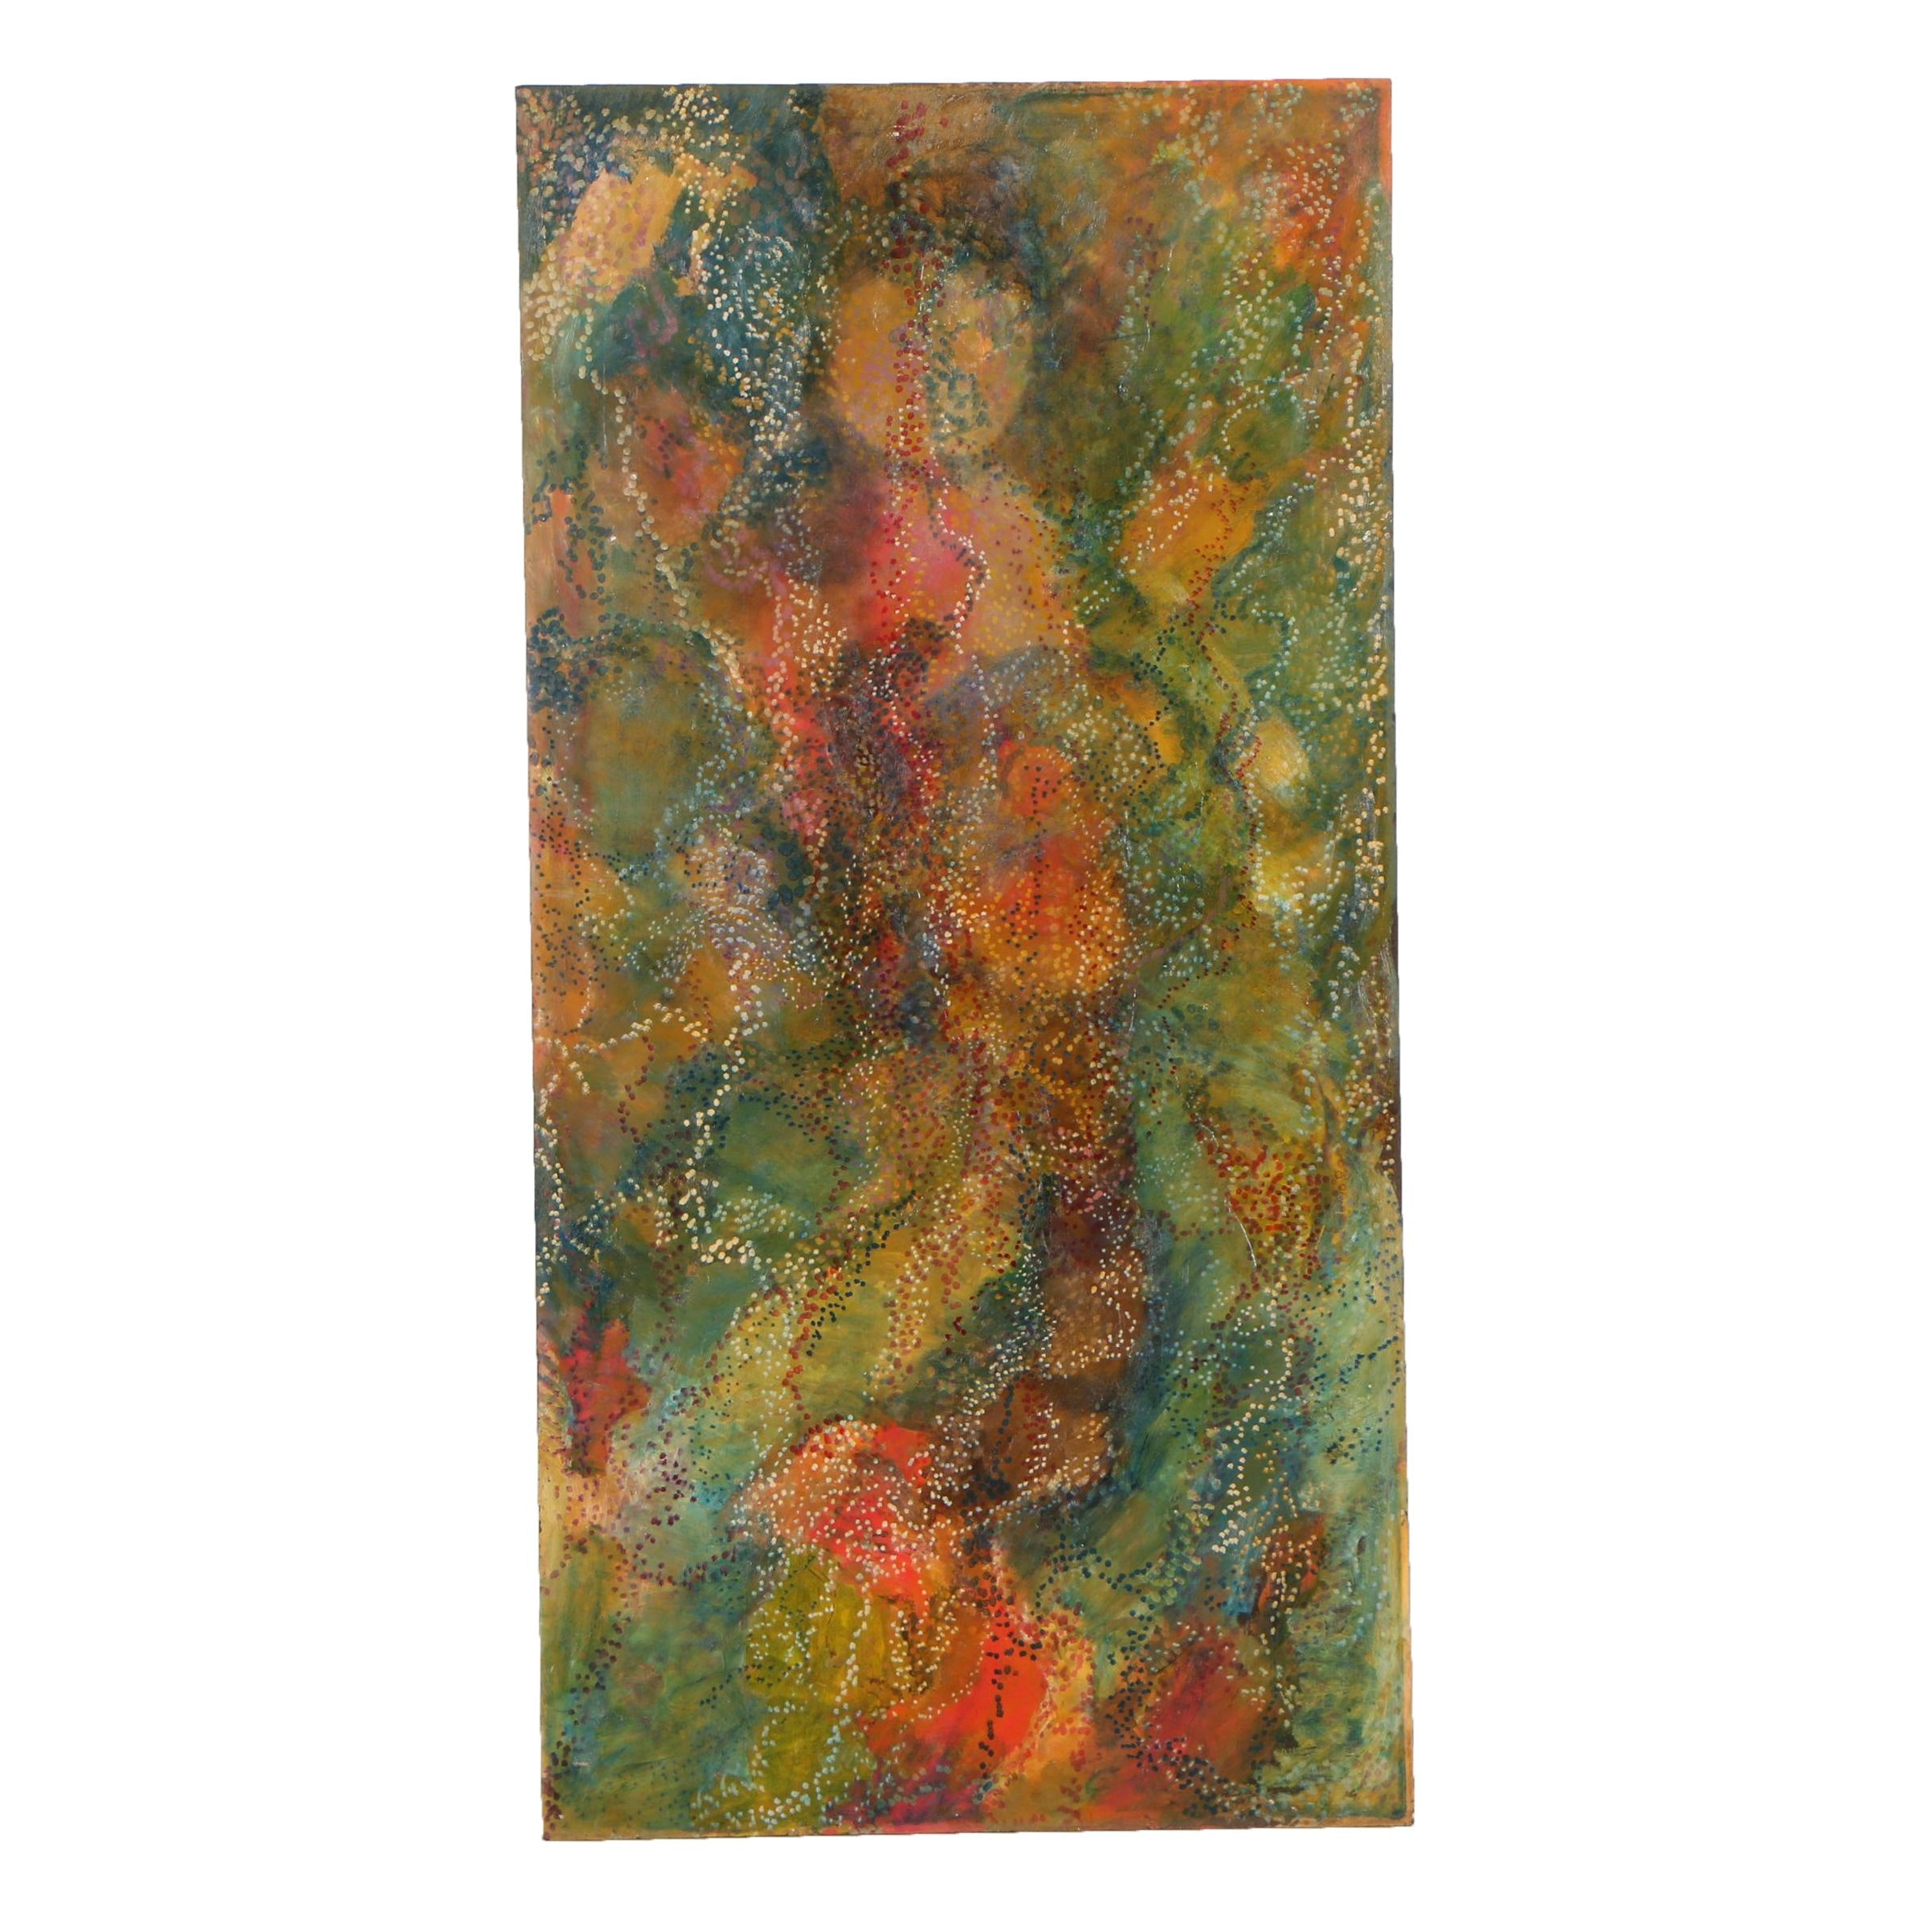 Oscar Murillo Monumental Abstract Oil Painting